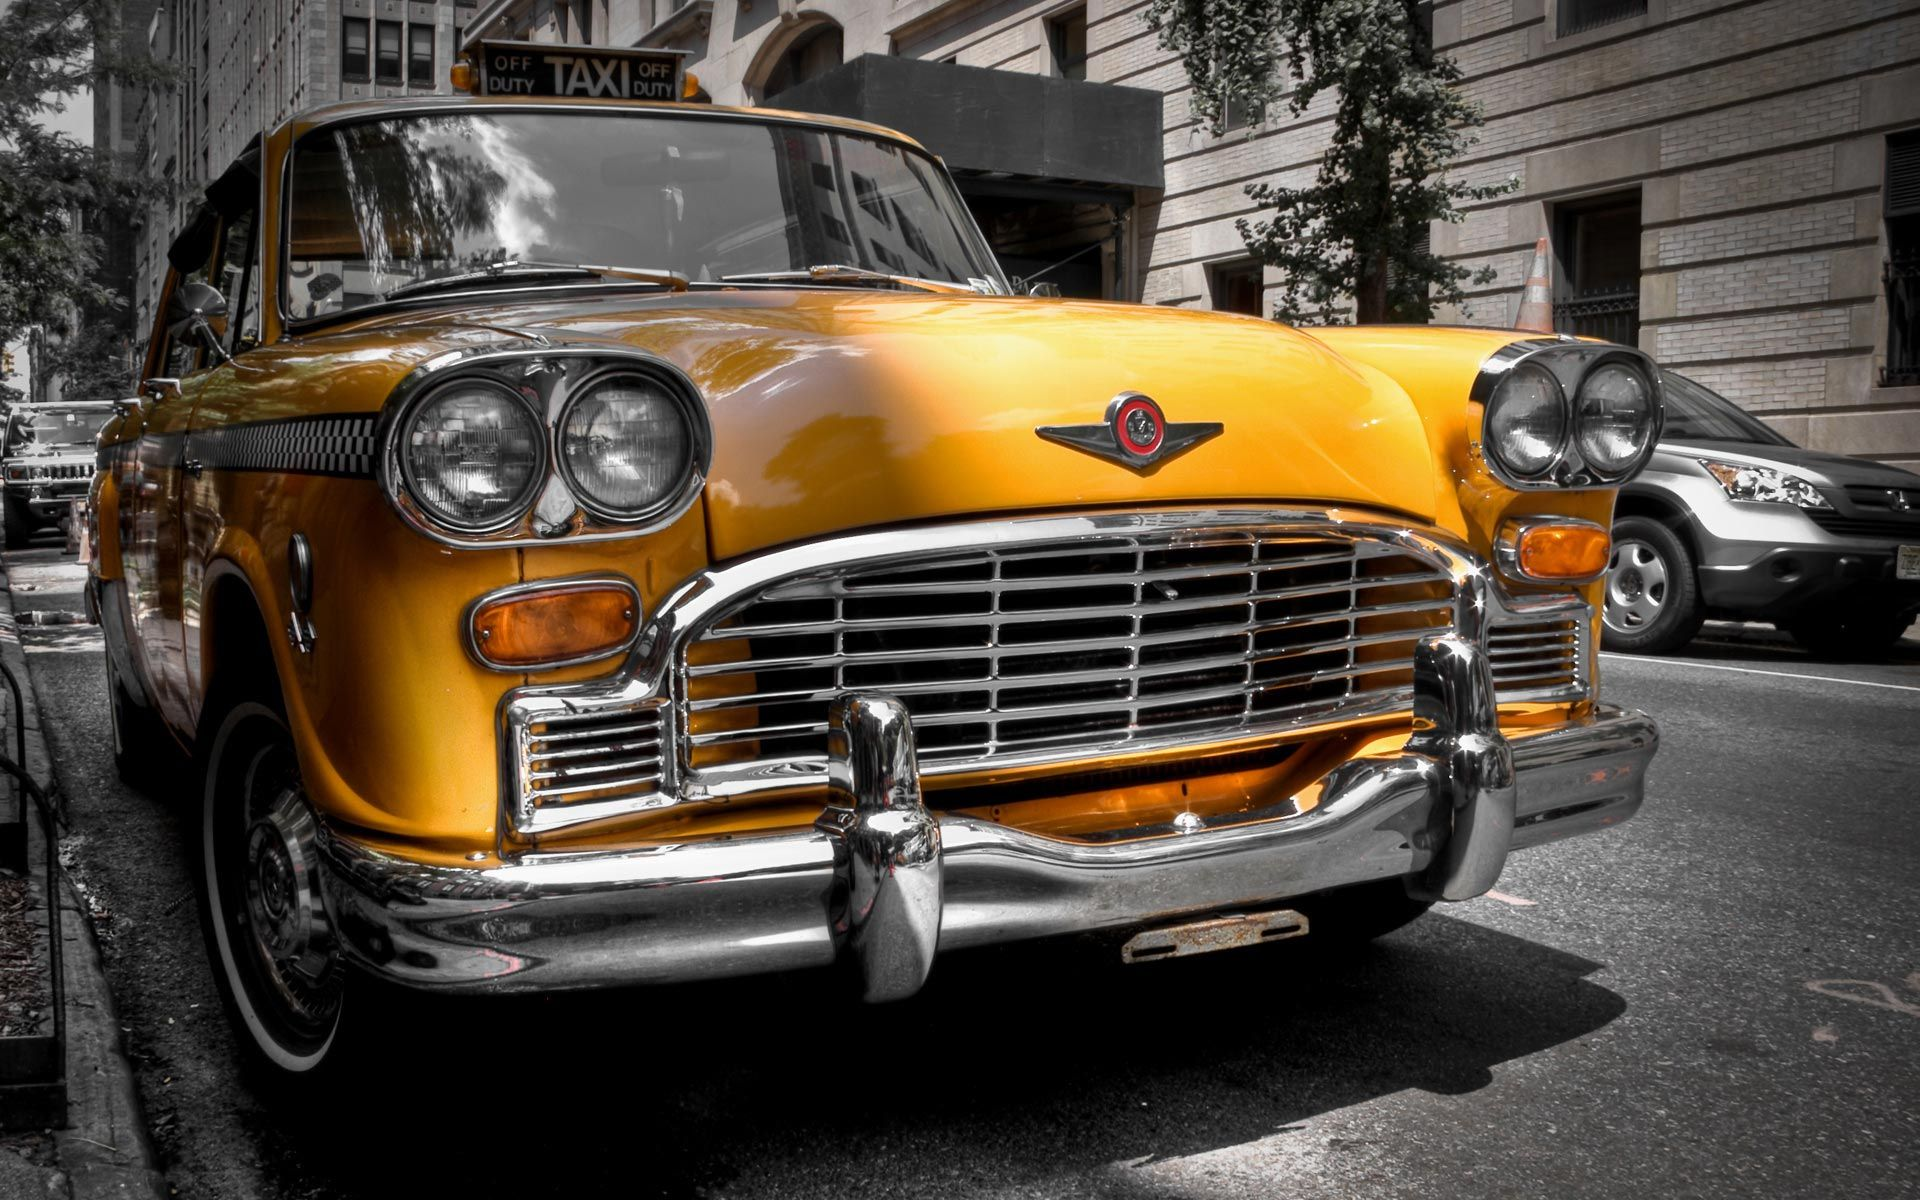 New York Winter Yellow Cab Hd Place